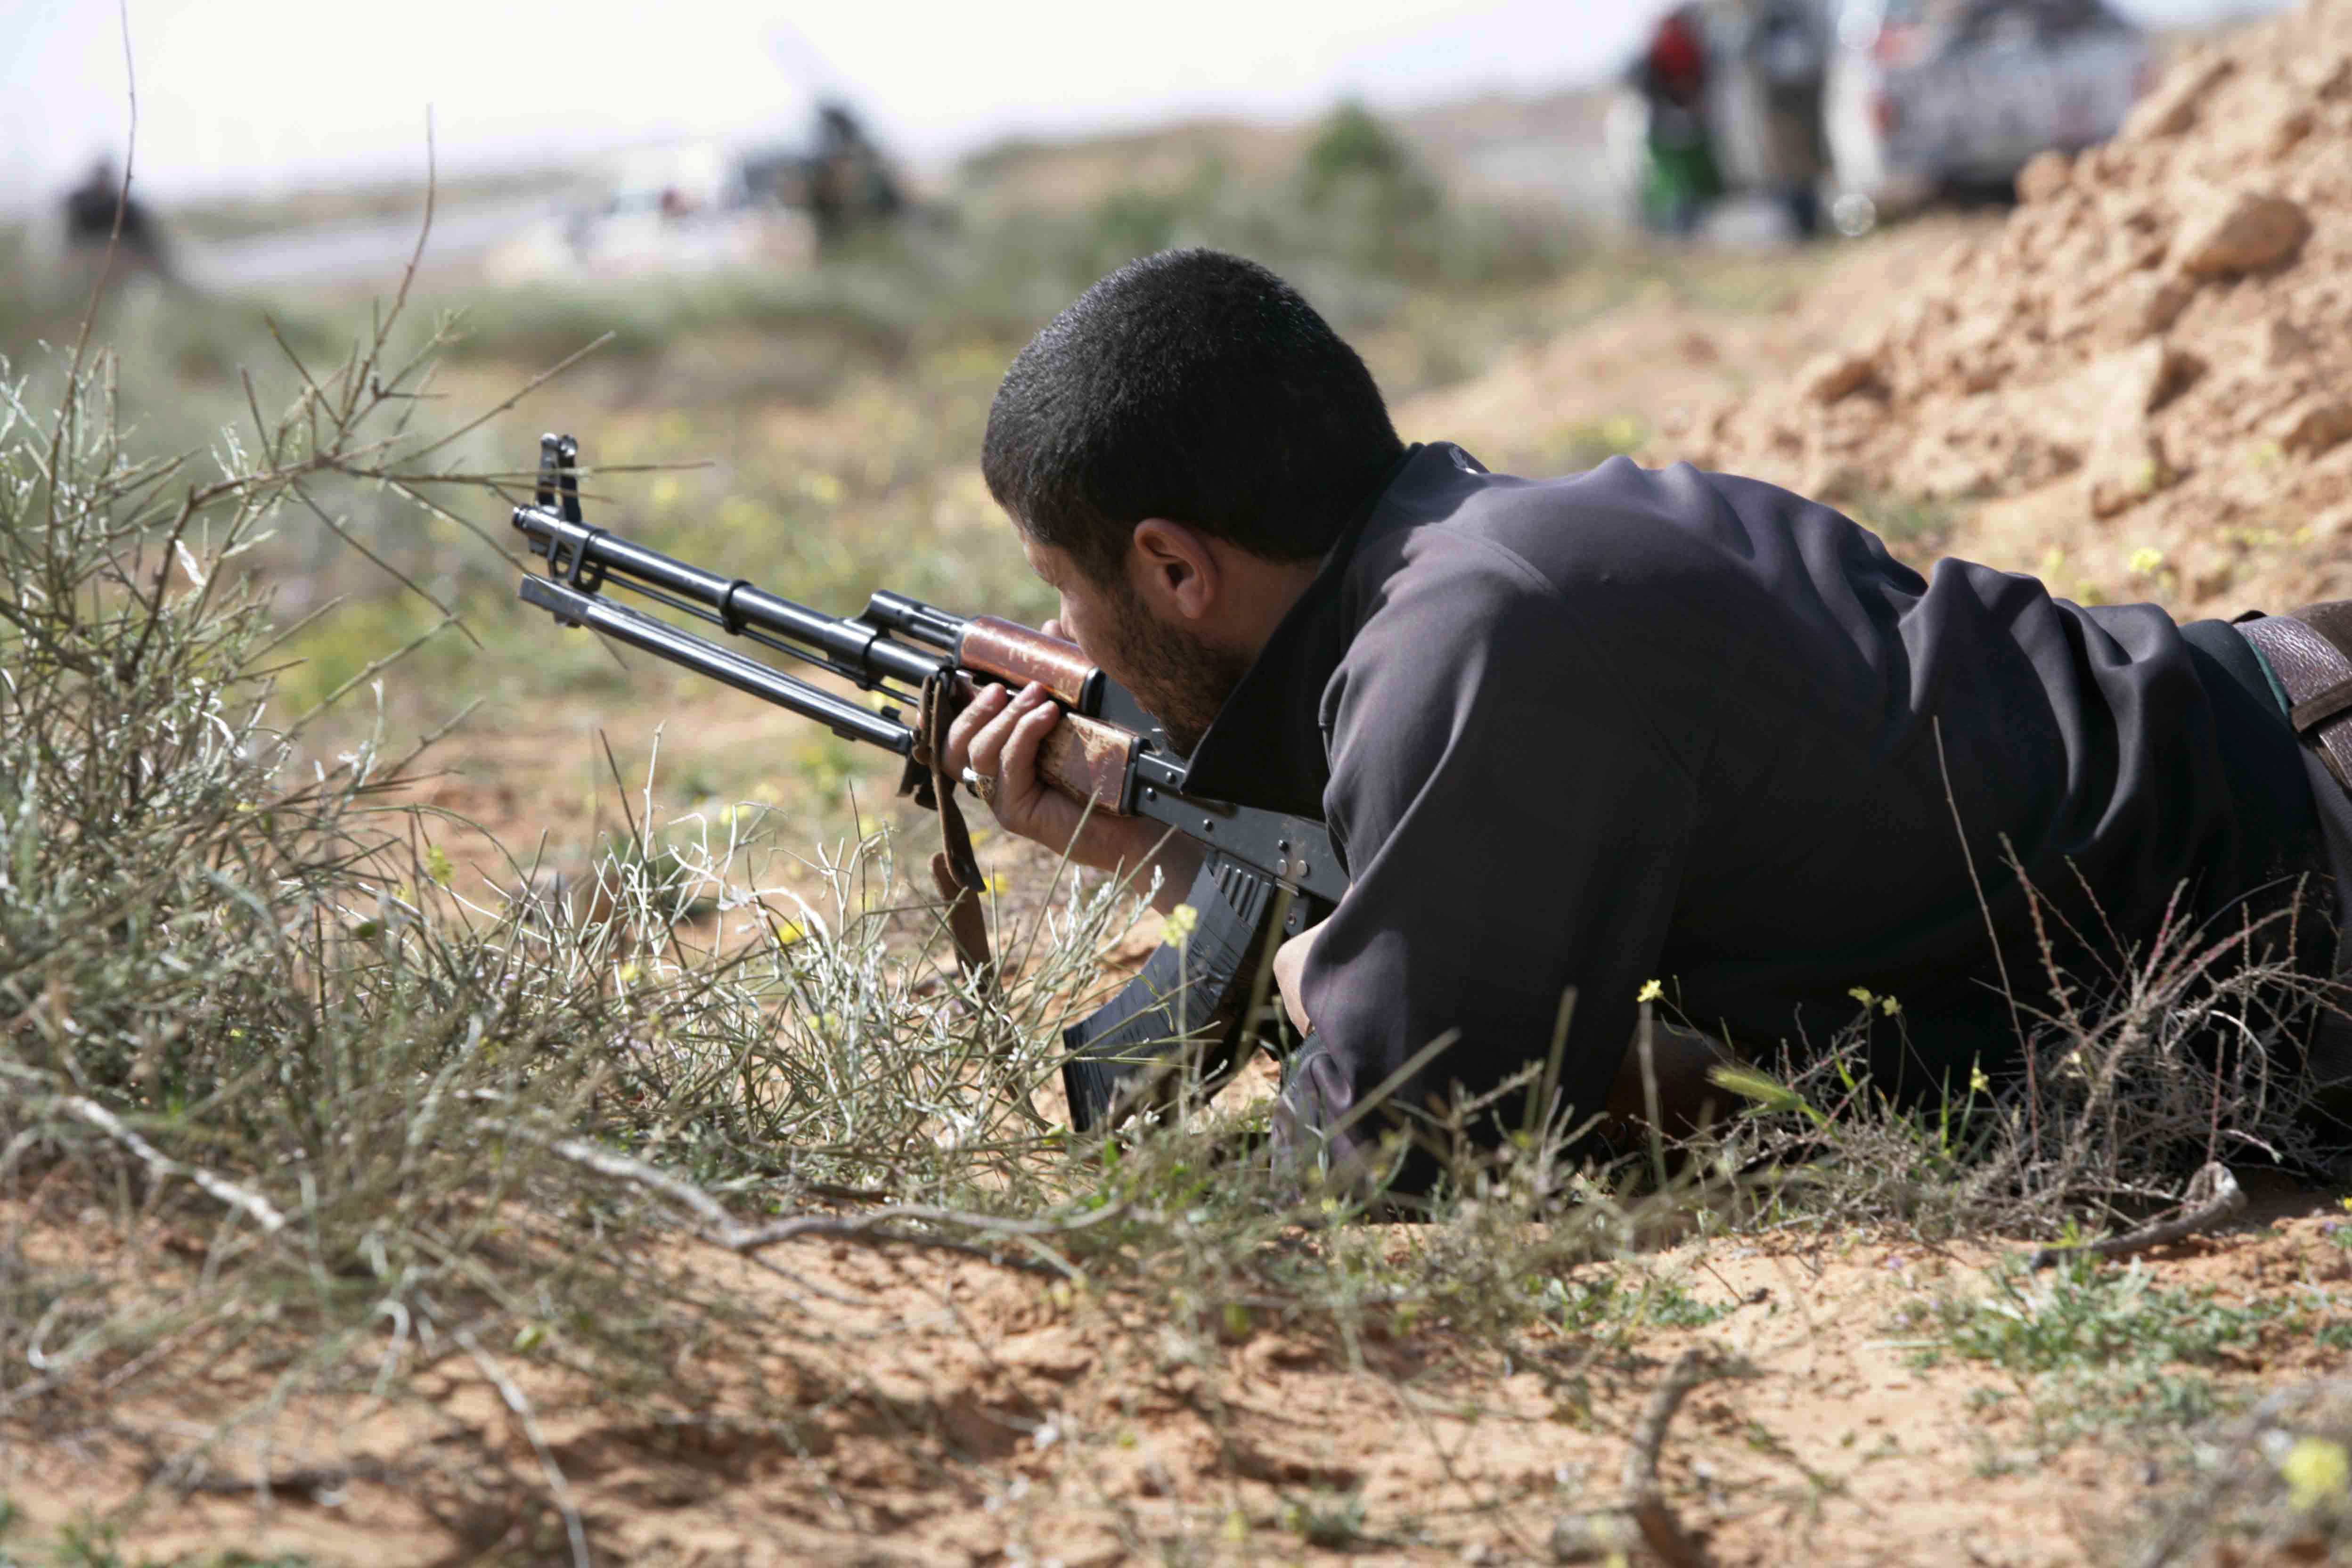 Is There A Secret Sniper On A One Man Mission Against ISIL? sniper3 1